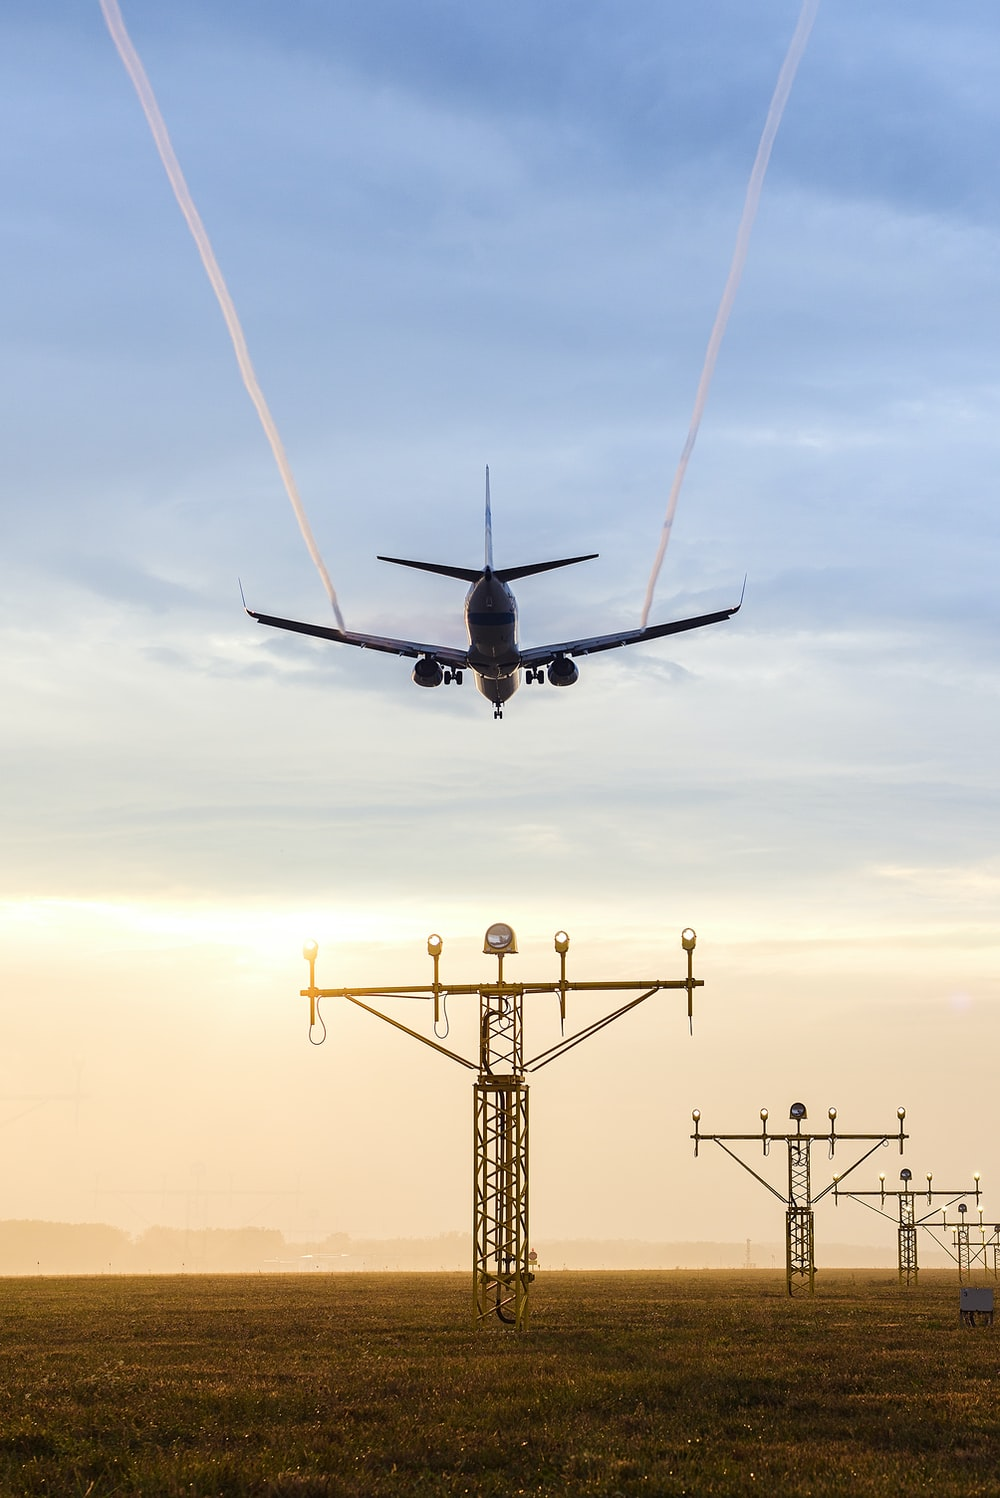 plane over electric tower